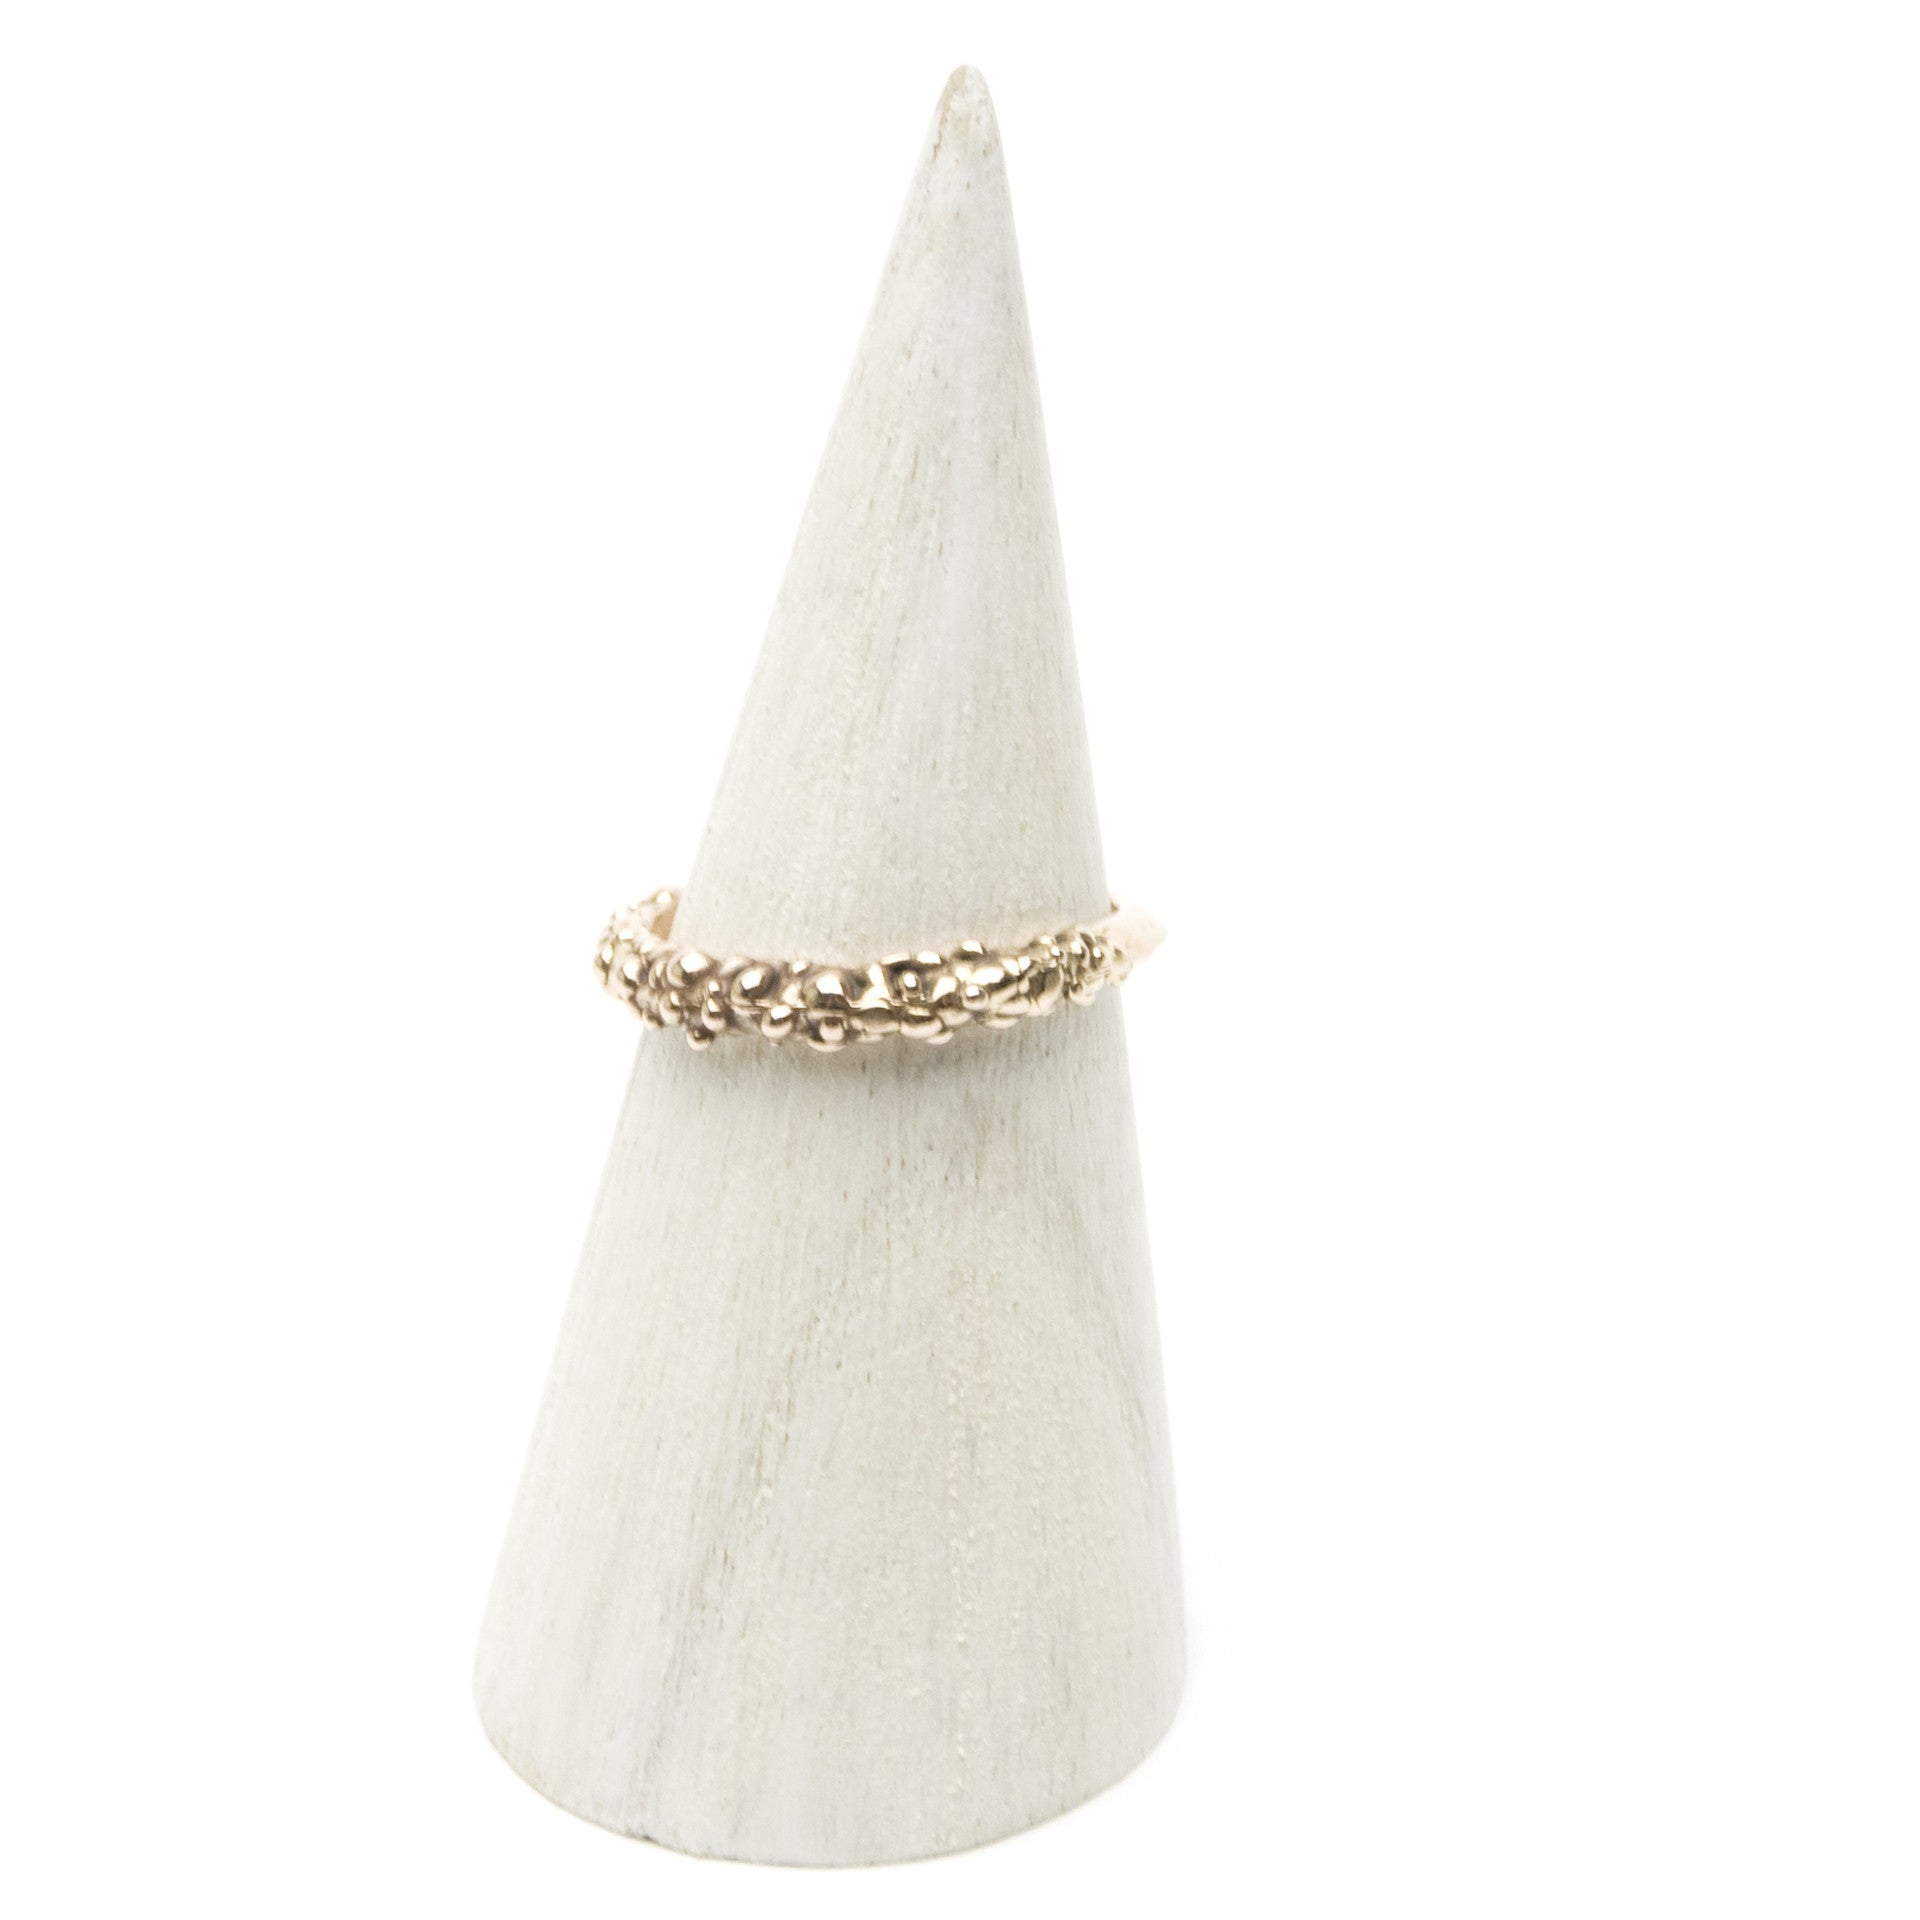 Bubbles 14K Rose Gold Ring - Size 7